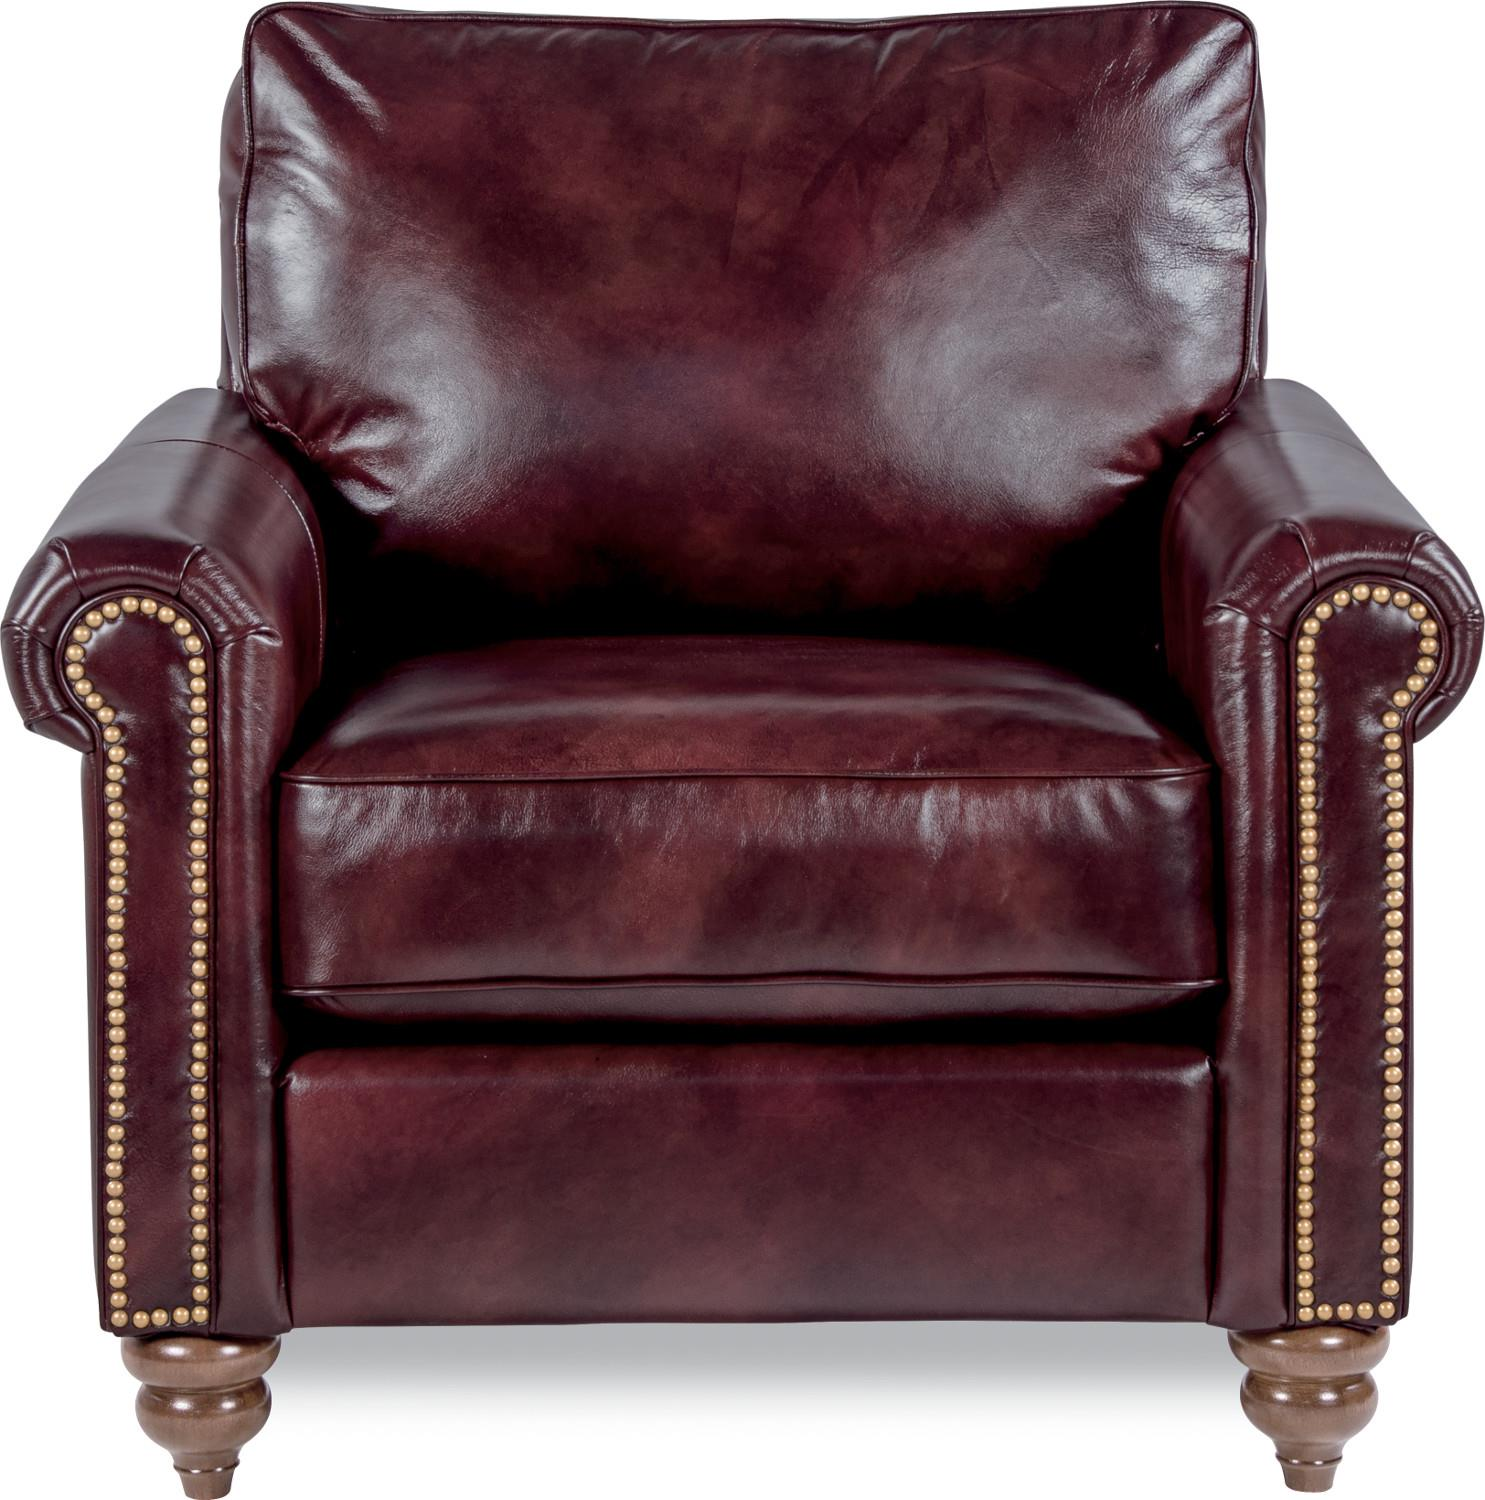 Traditional Rolled Arm Chair with Premier Comfort Core Cushions